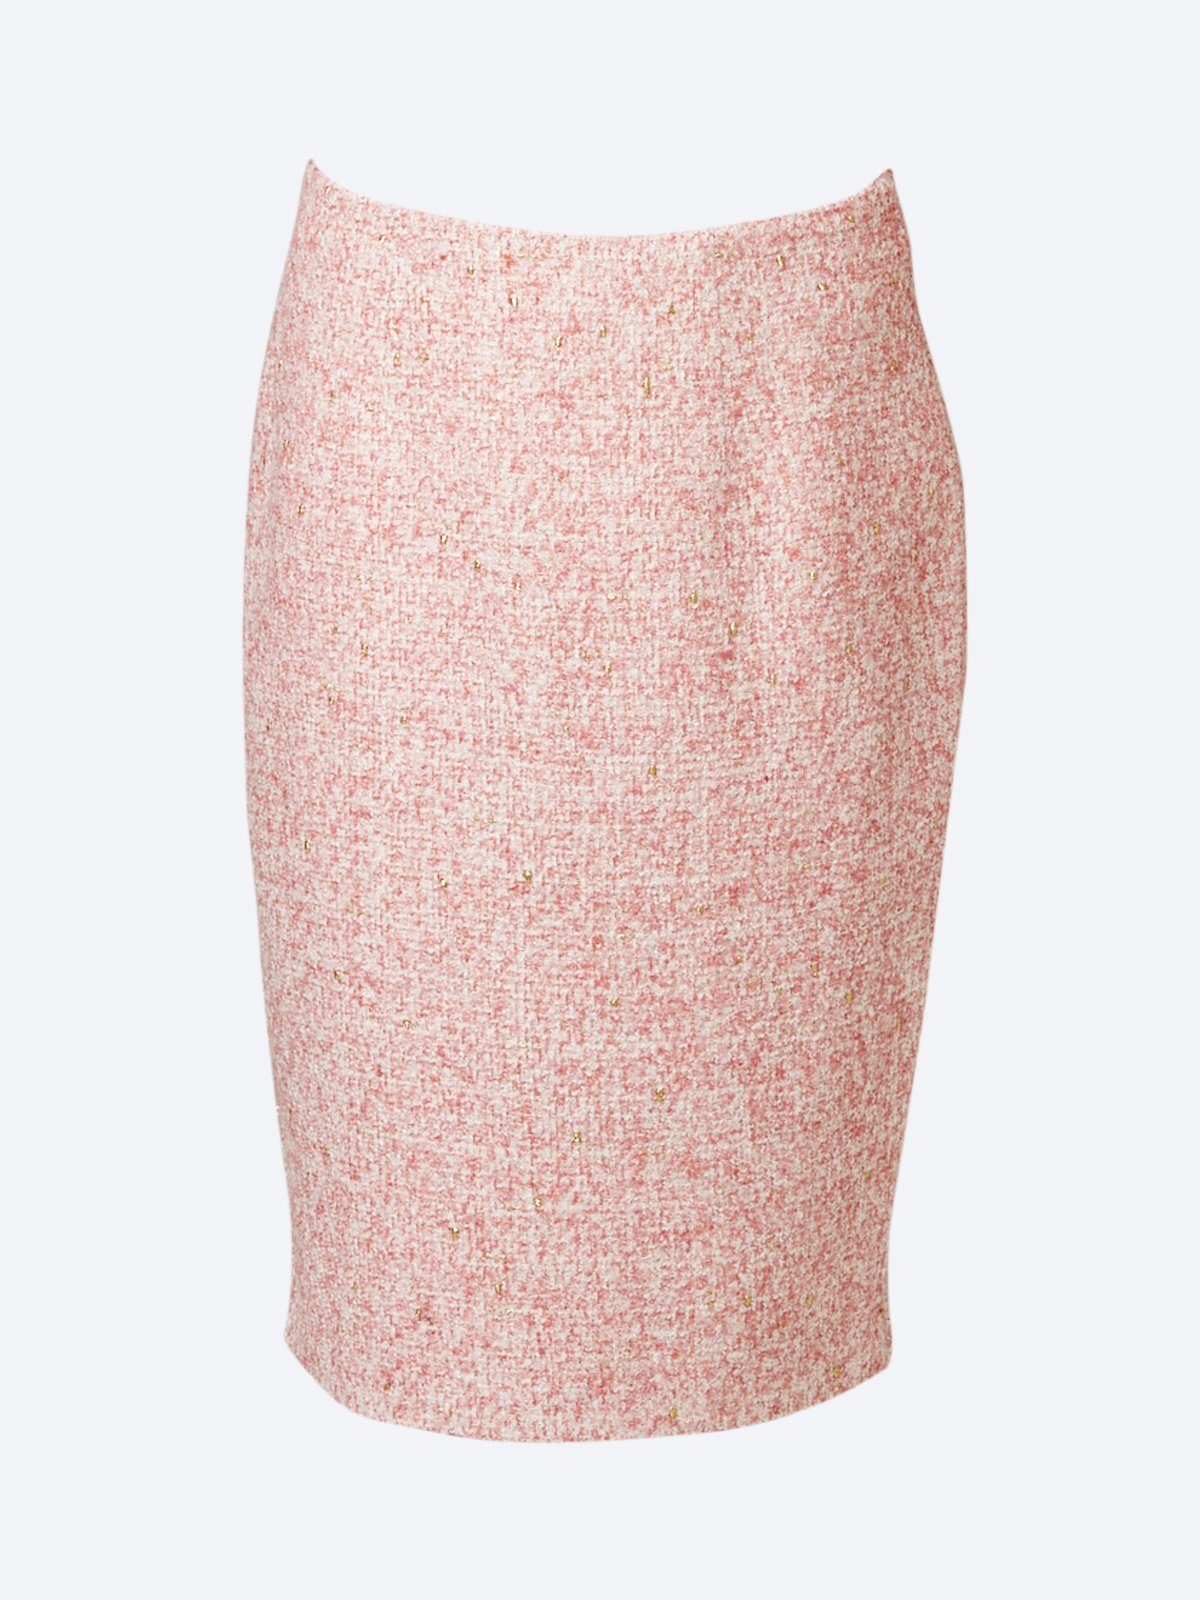 Yeltuor - PING PONG - Skirts - PING PONG TWEED PENCIL SKIRT -  -